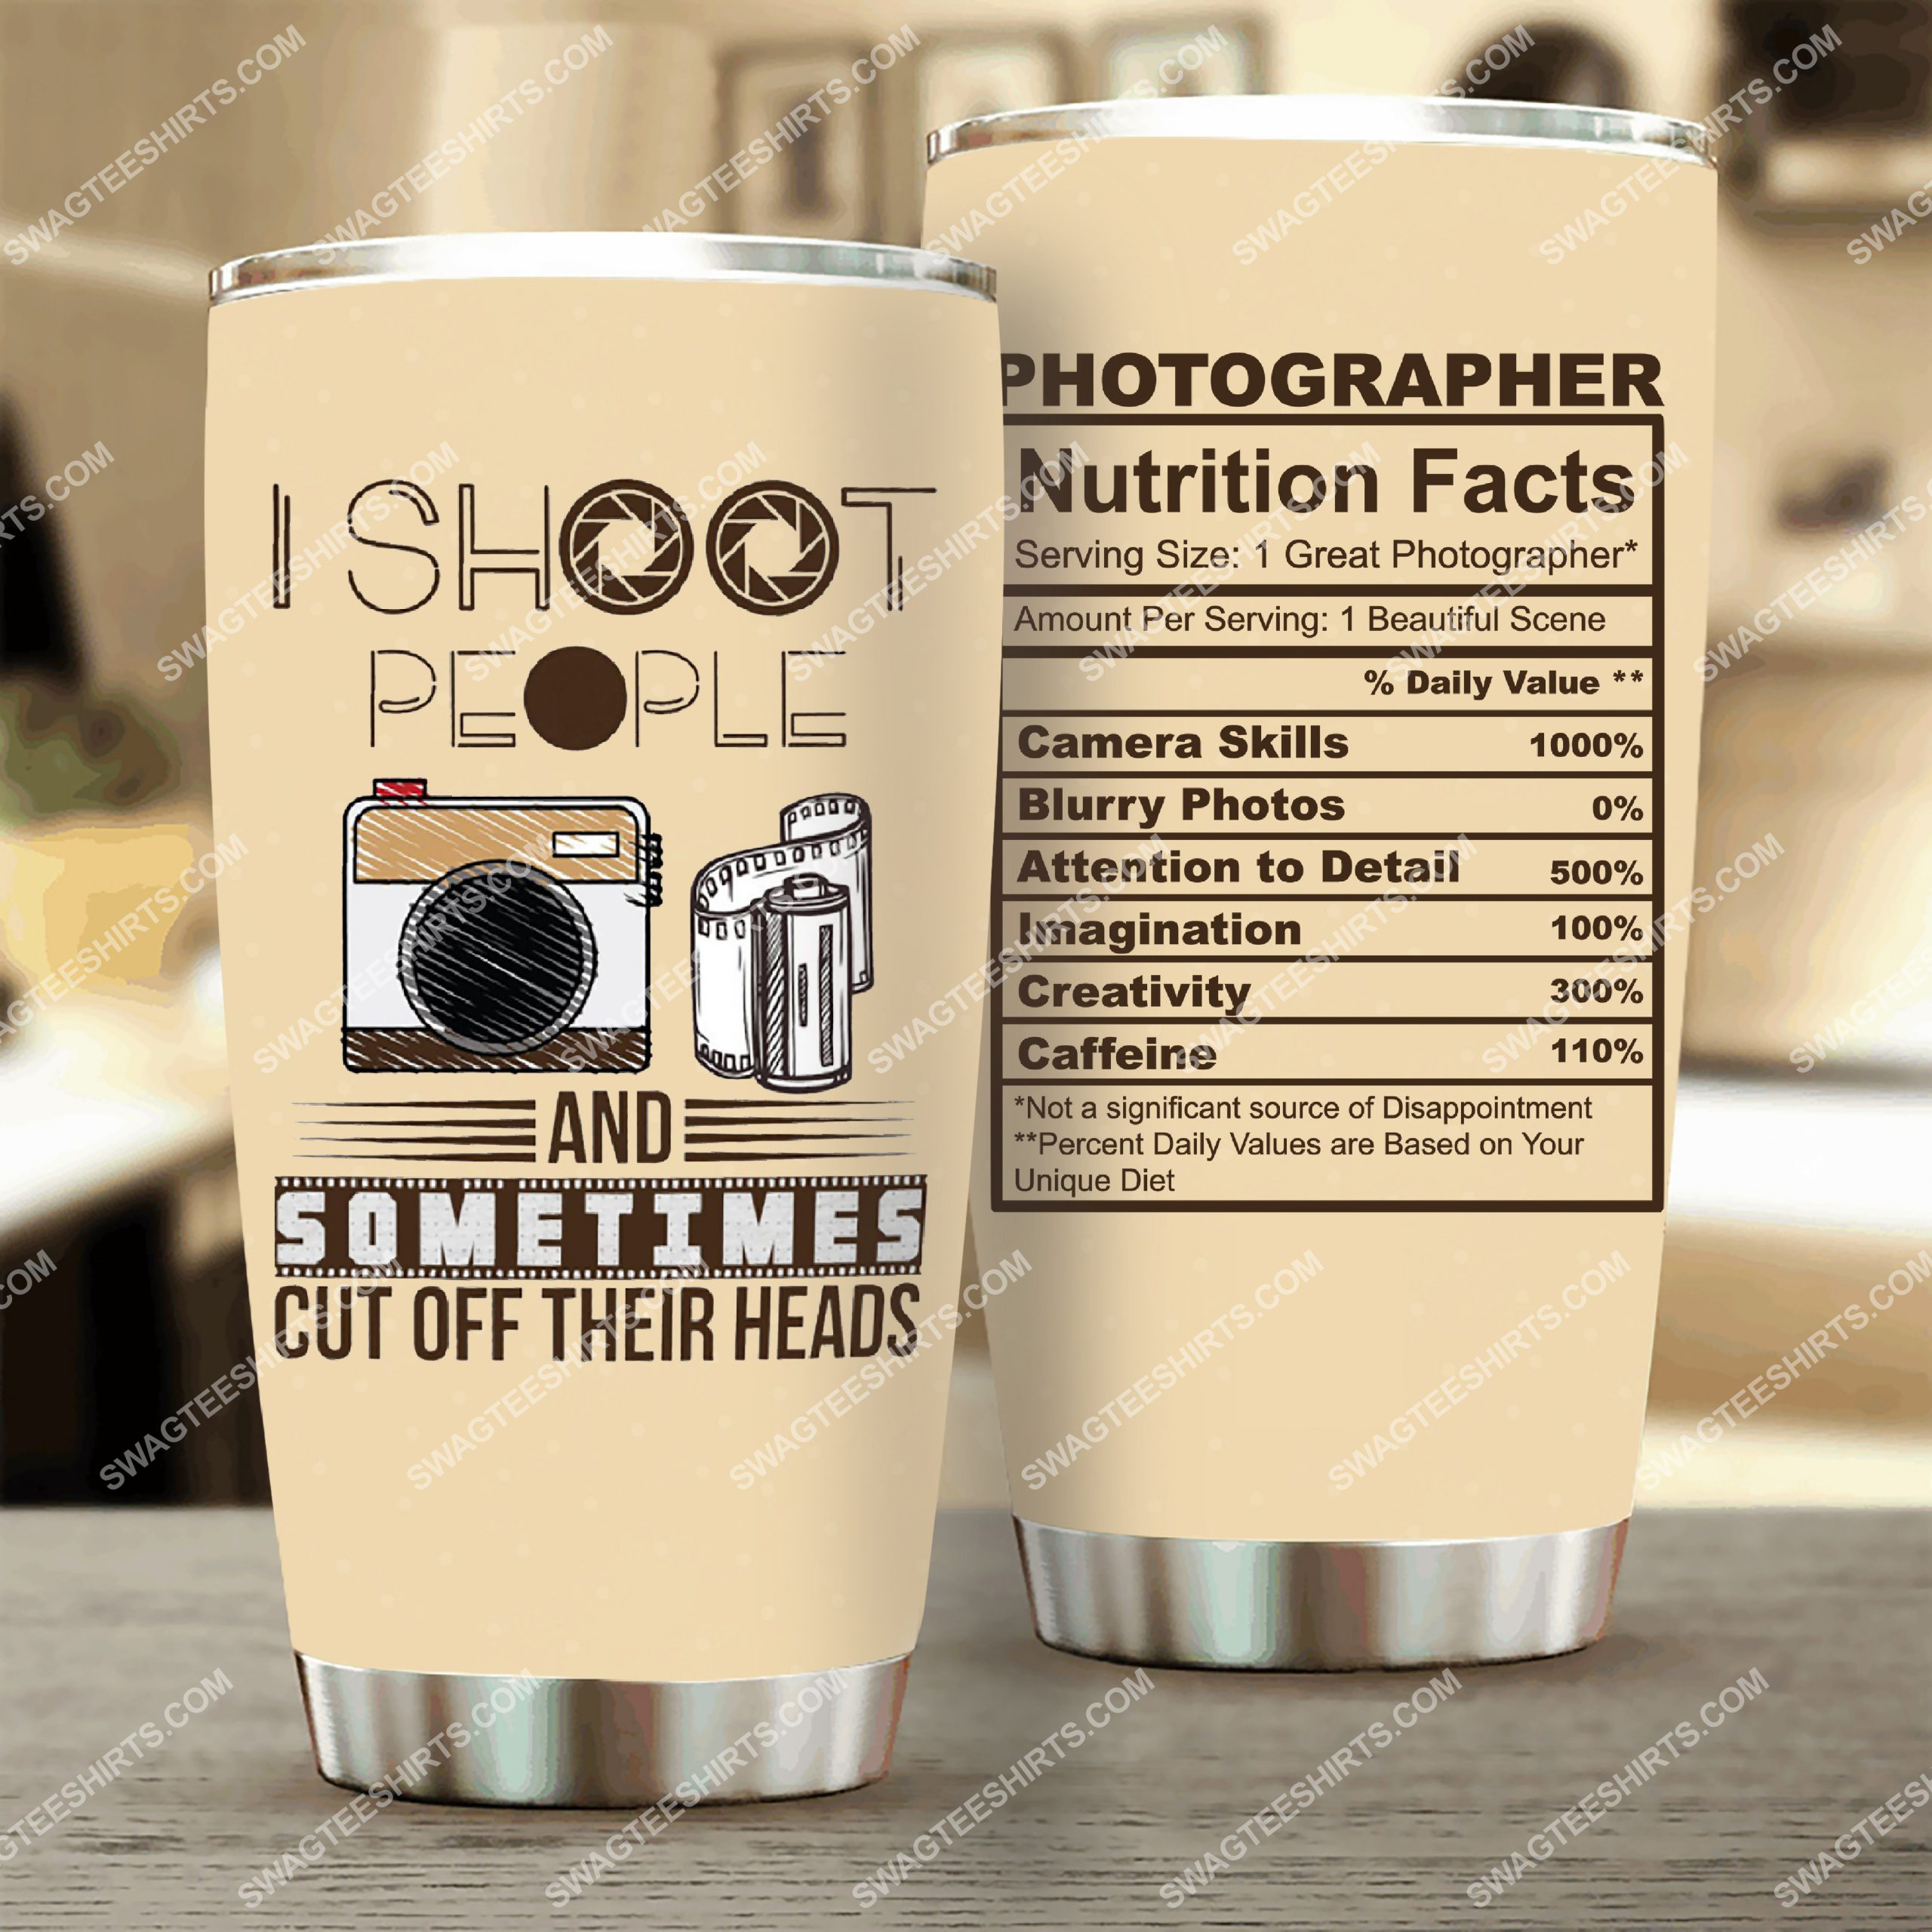 photographer i shoot people all over printed stainless steel tumbler 2(2) - Copy